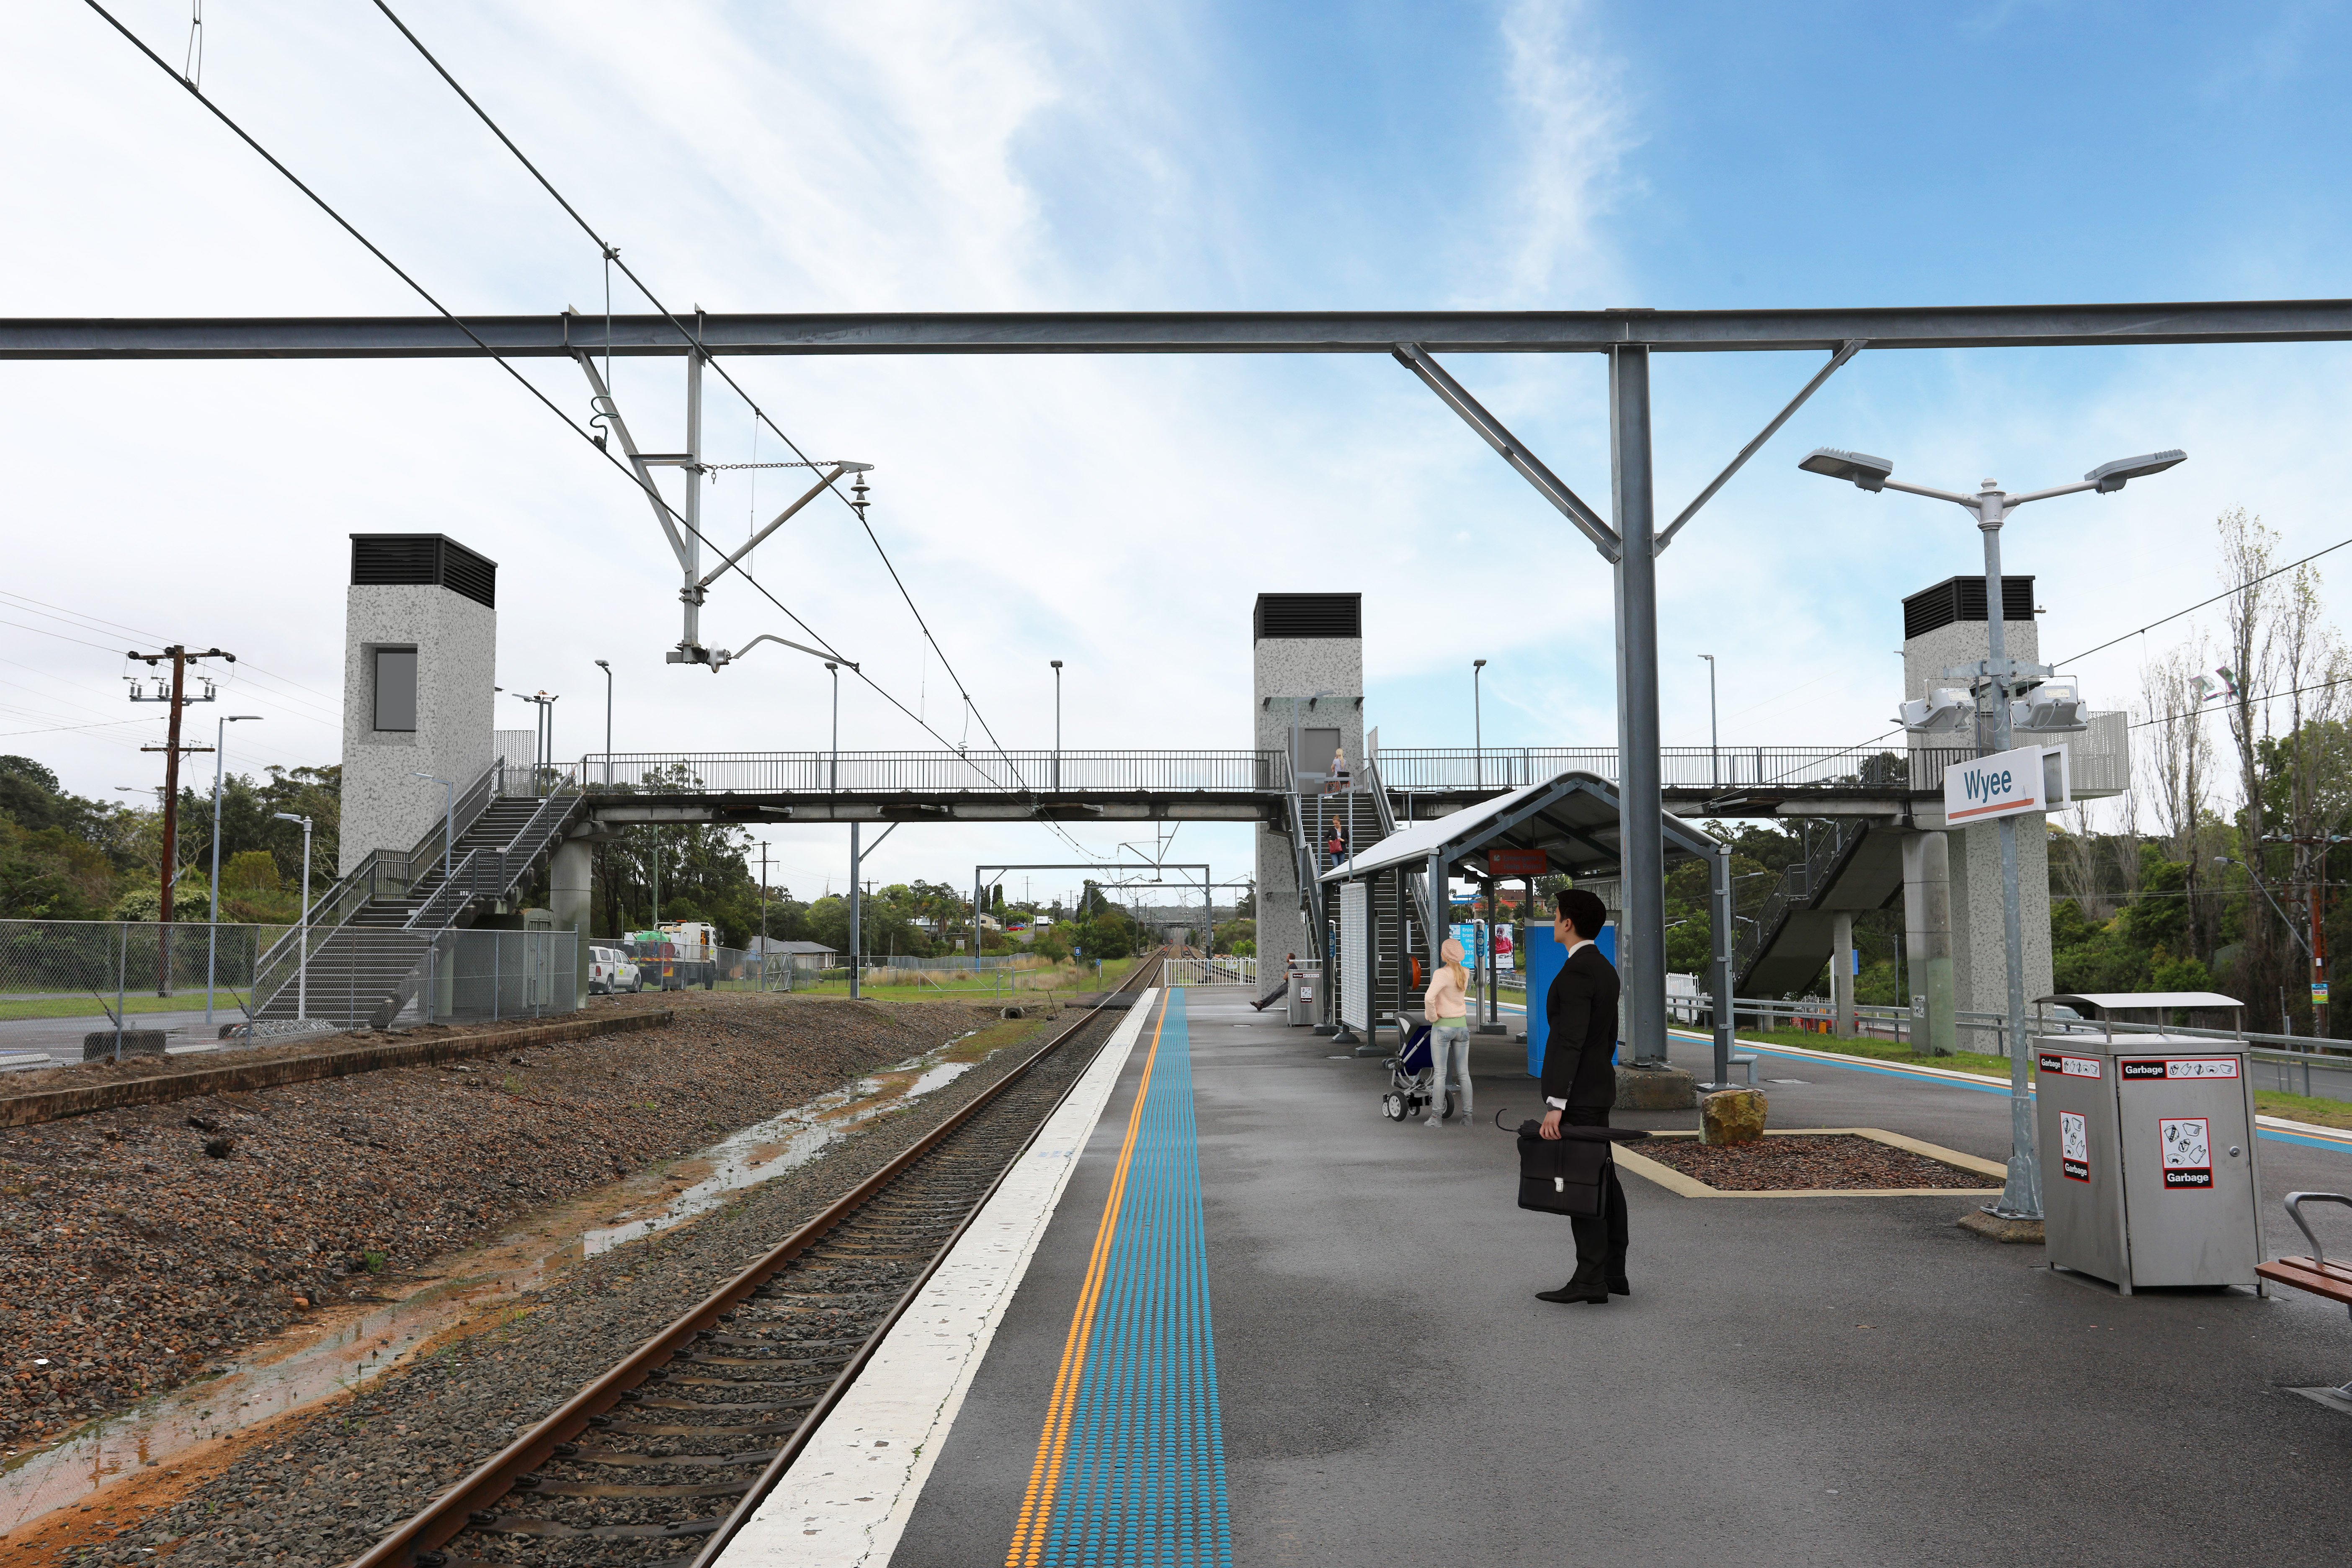 Work on the upgrade of Wyee Station will start in coming months with Transport for NSW awarding a works contract to construction firm Gartner Rose.